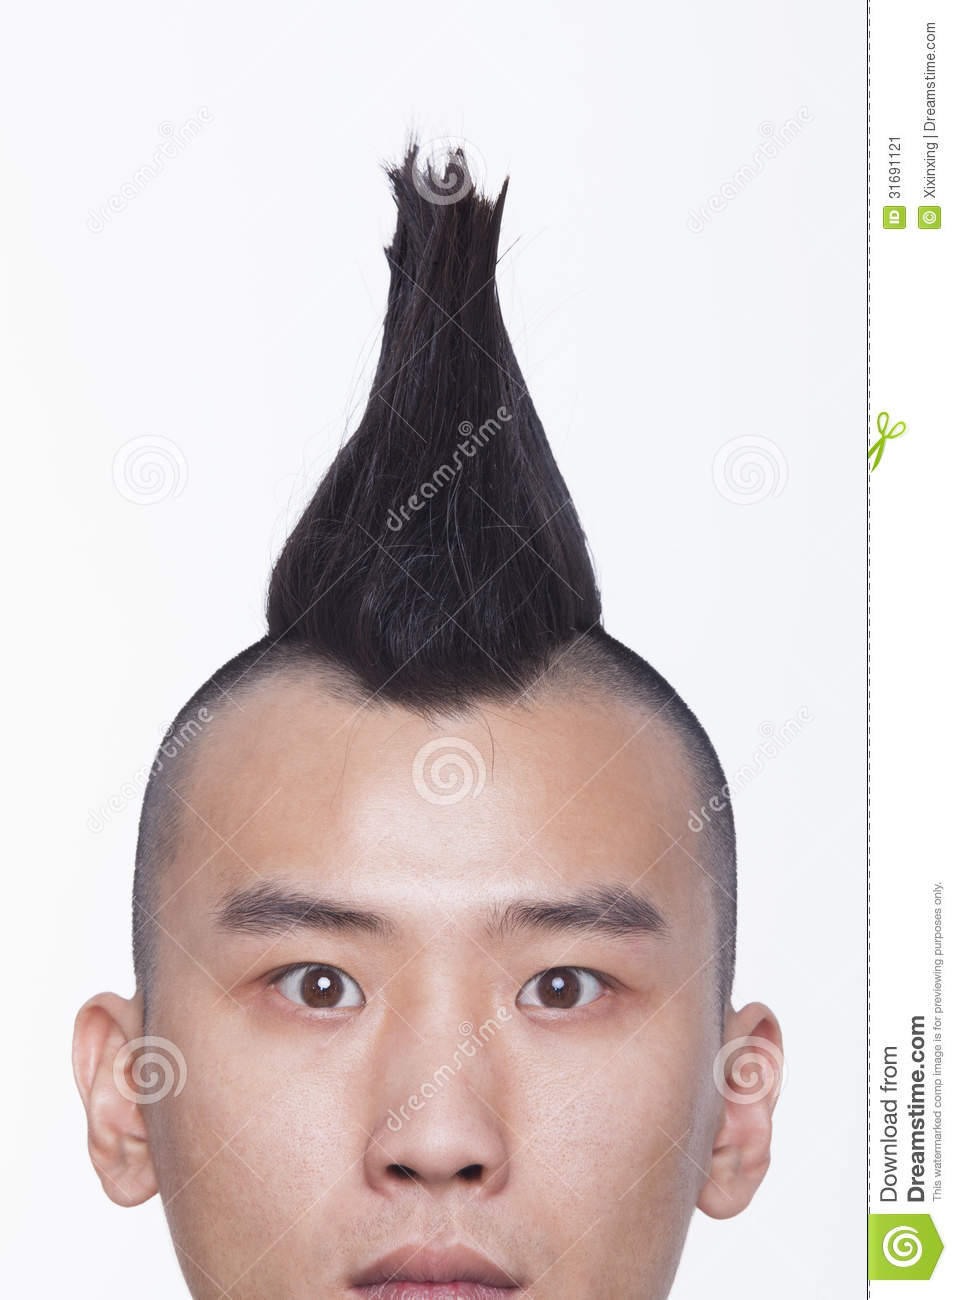 Young man with Mohawk close-up